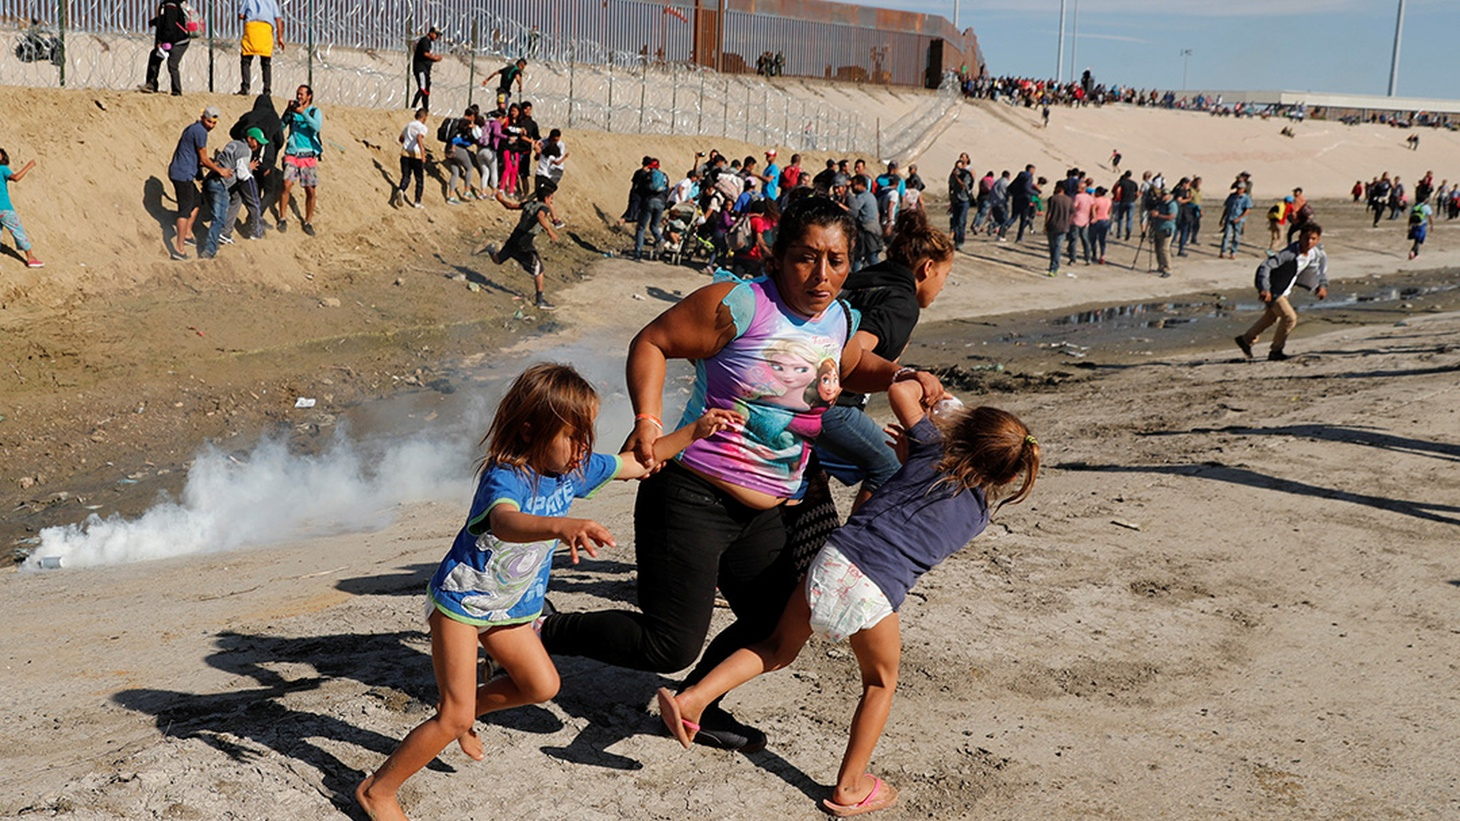 Maria Lila Meza Castro (C), a 39-year-old migrant woman from Honduras, part of a caravan of thousands from Central America trying to reach the United States, runs away from tear gas with her five-year-old twin daughters Saira Nalleli Mejia Meza (L) and Cheili Nalleli Mejia Meza (R) in front of the border wall between the U.S. and Mexico, in Tijuana, Mexico November 25, 2018.